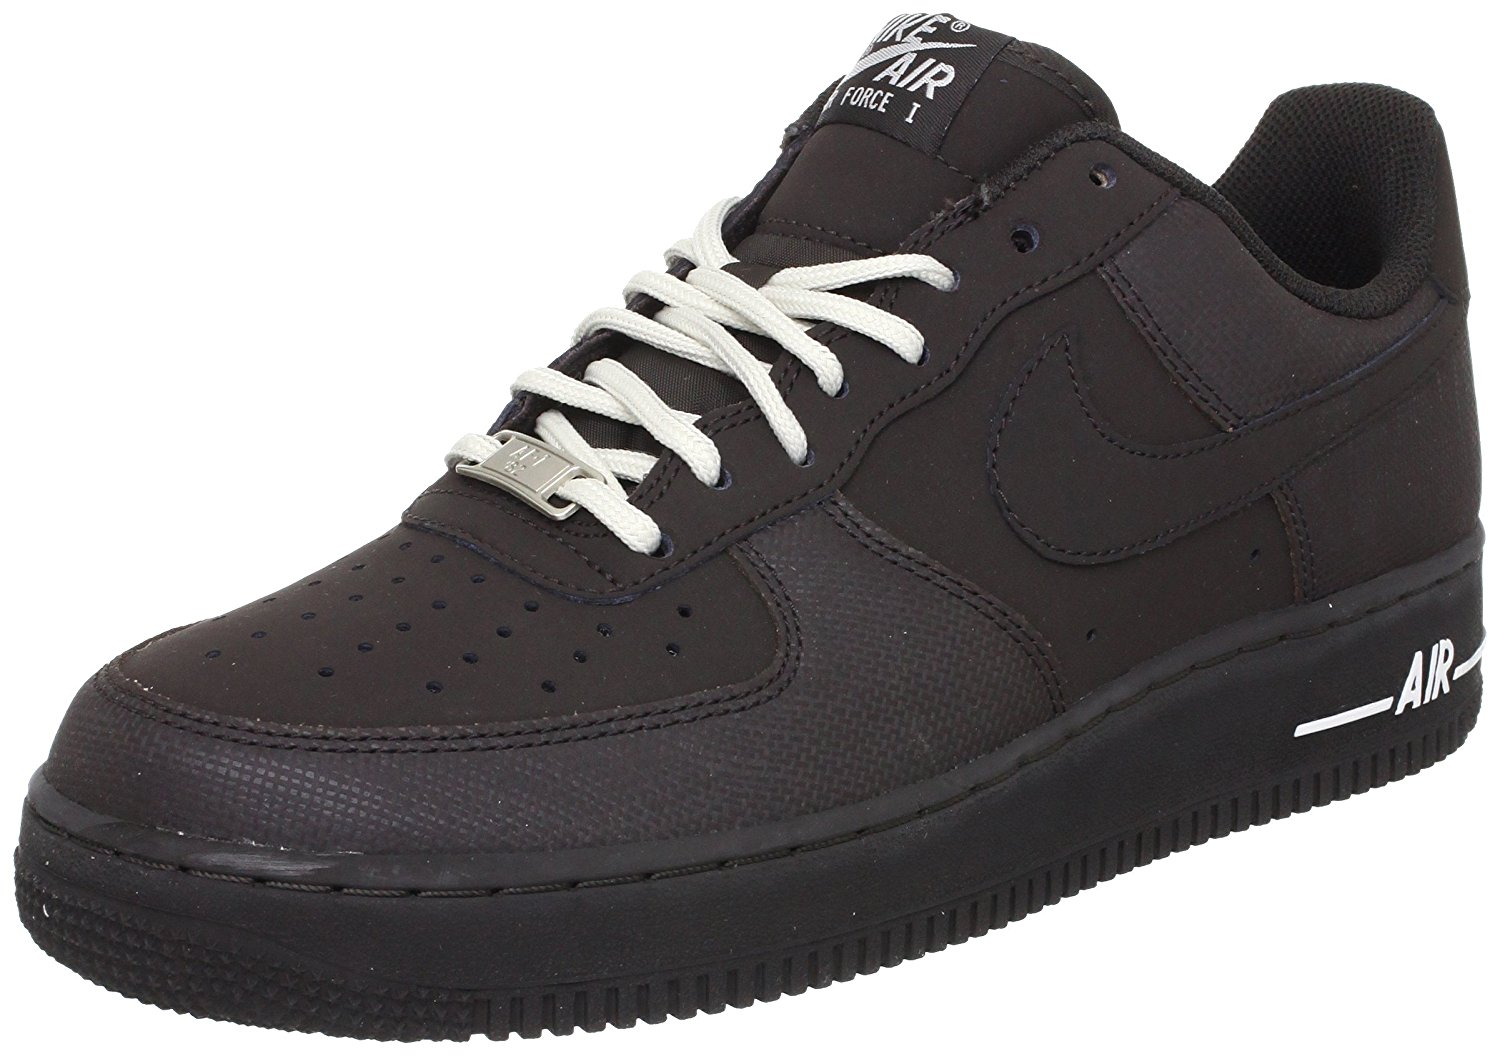 hot sale online a9941 16d46 Nike Air Force 1 Low Mens Basketball Shoes 488298-202